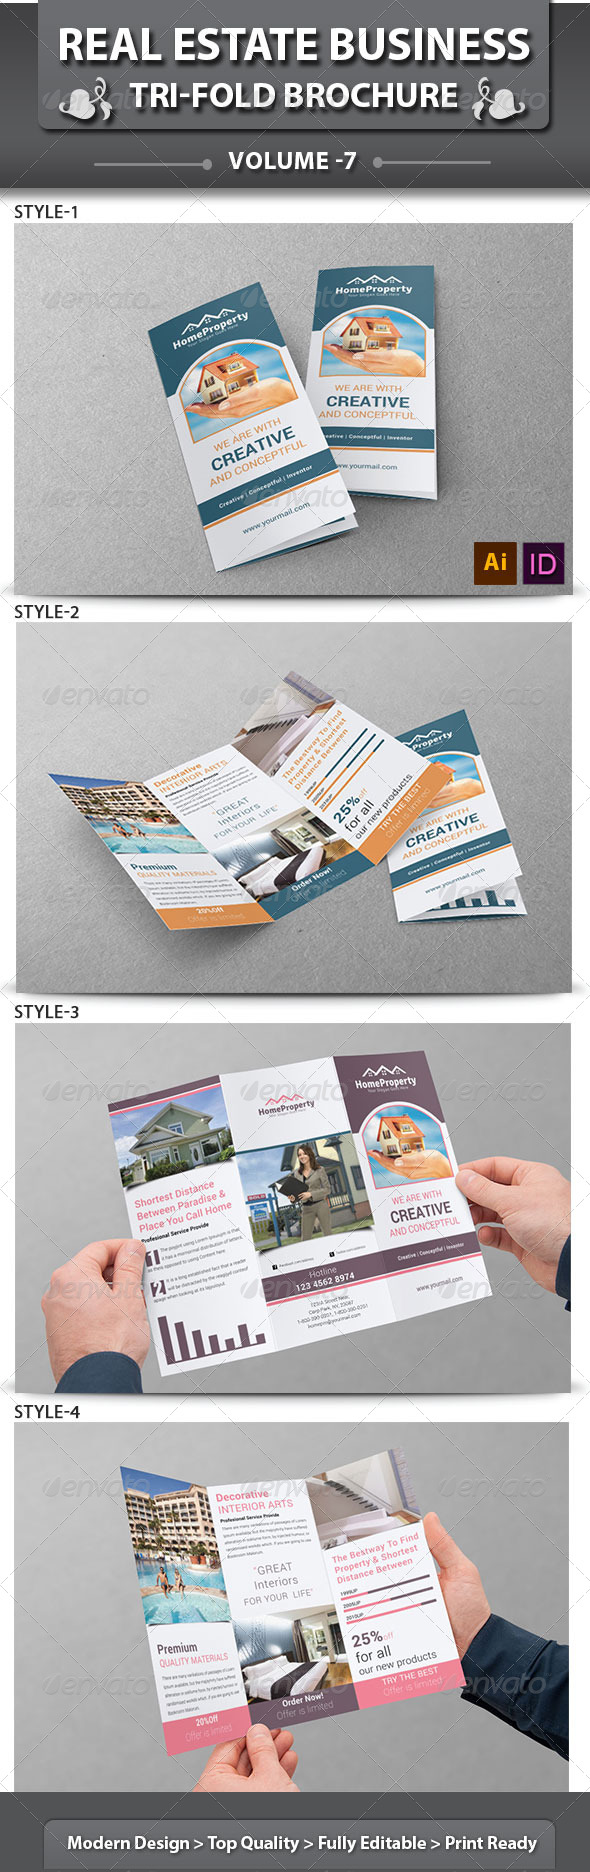 GraphicRiver Real Estate Business Tri-Fold Brochure Volume 7 6556830